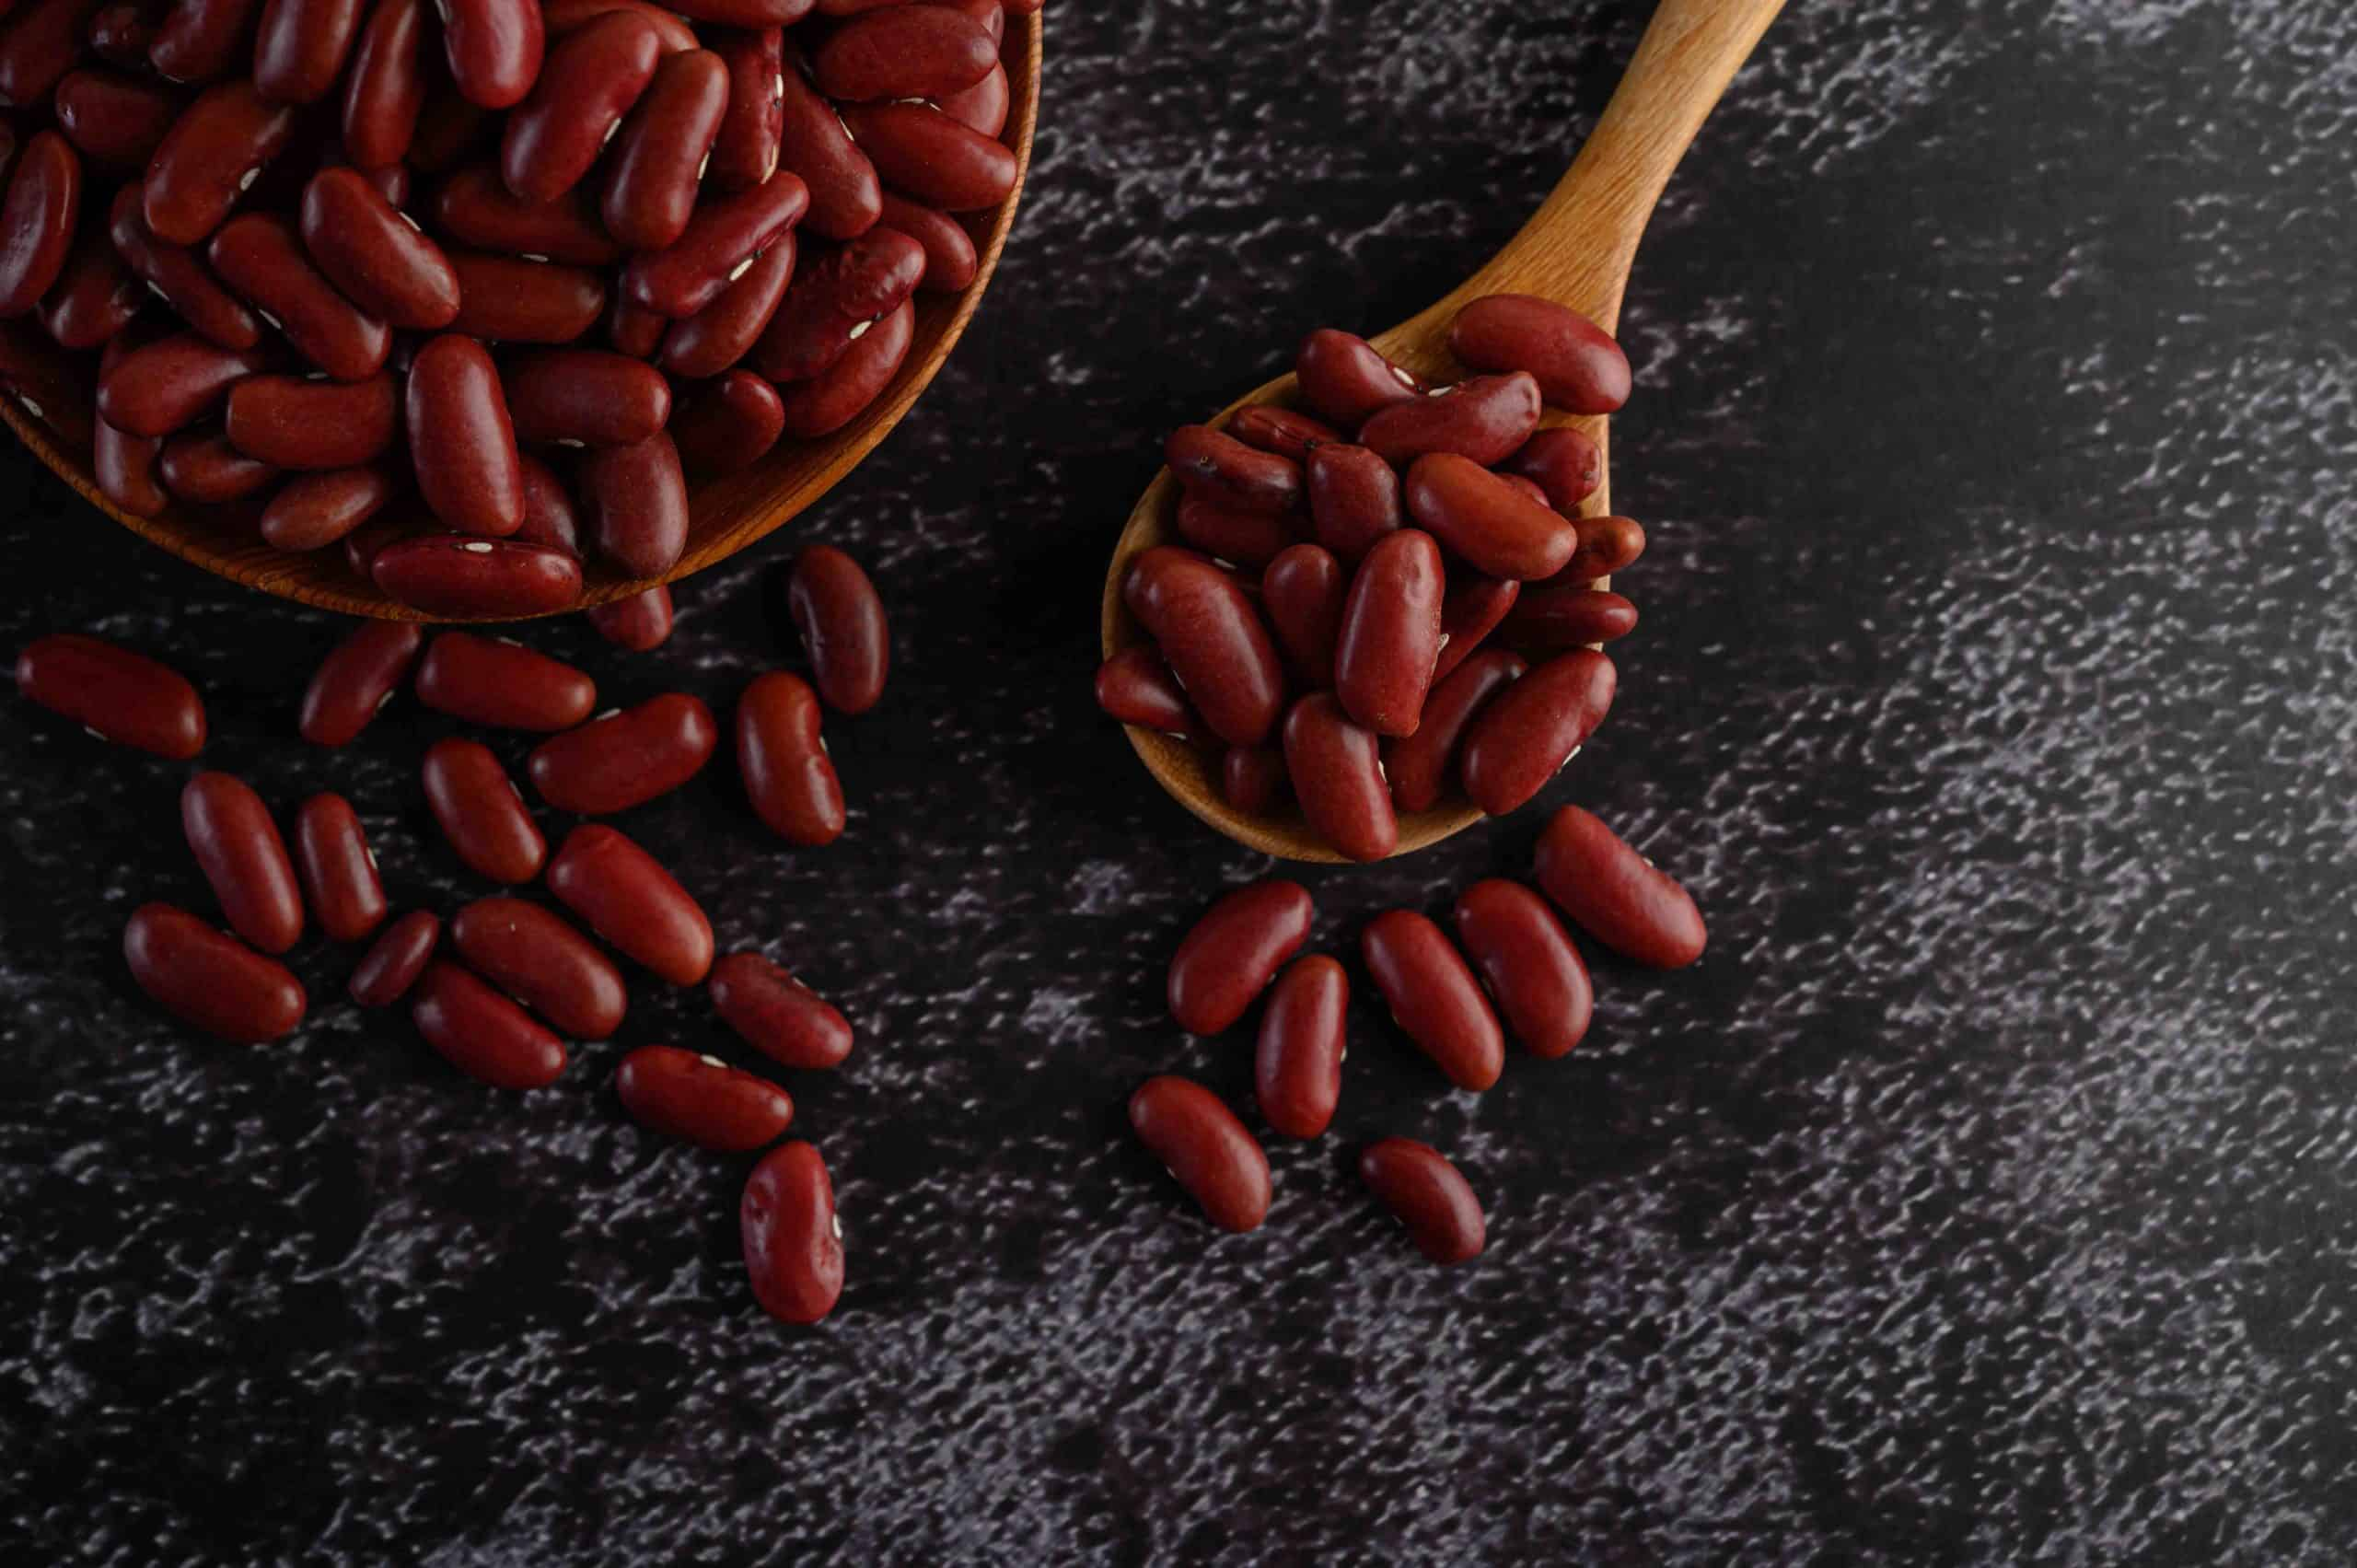 Red beans in a wooden bowl and wooden spoon on the black cement floor